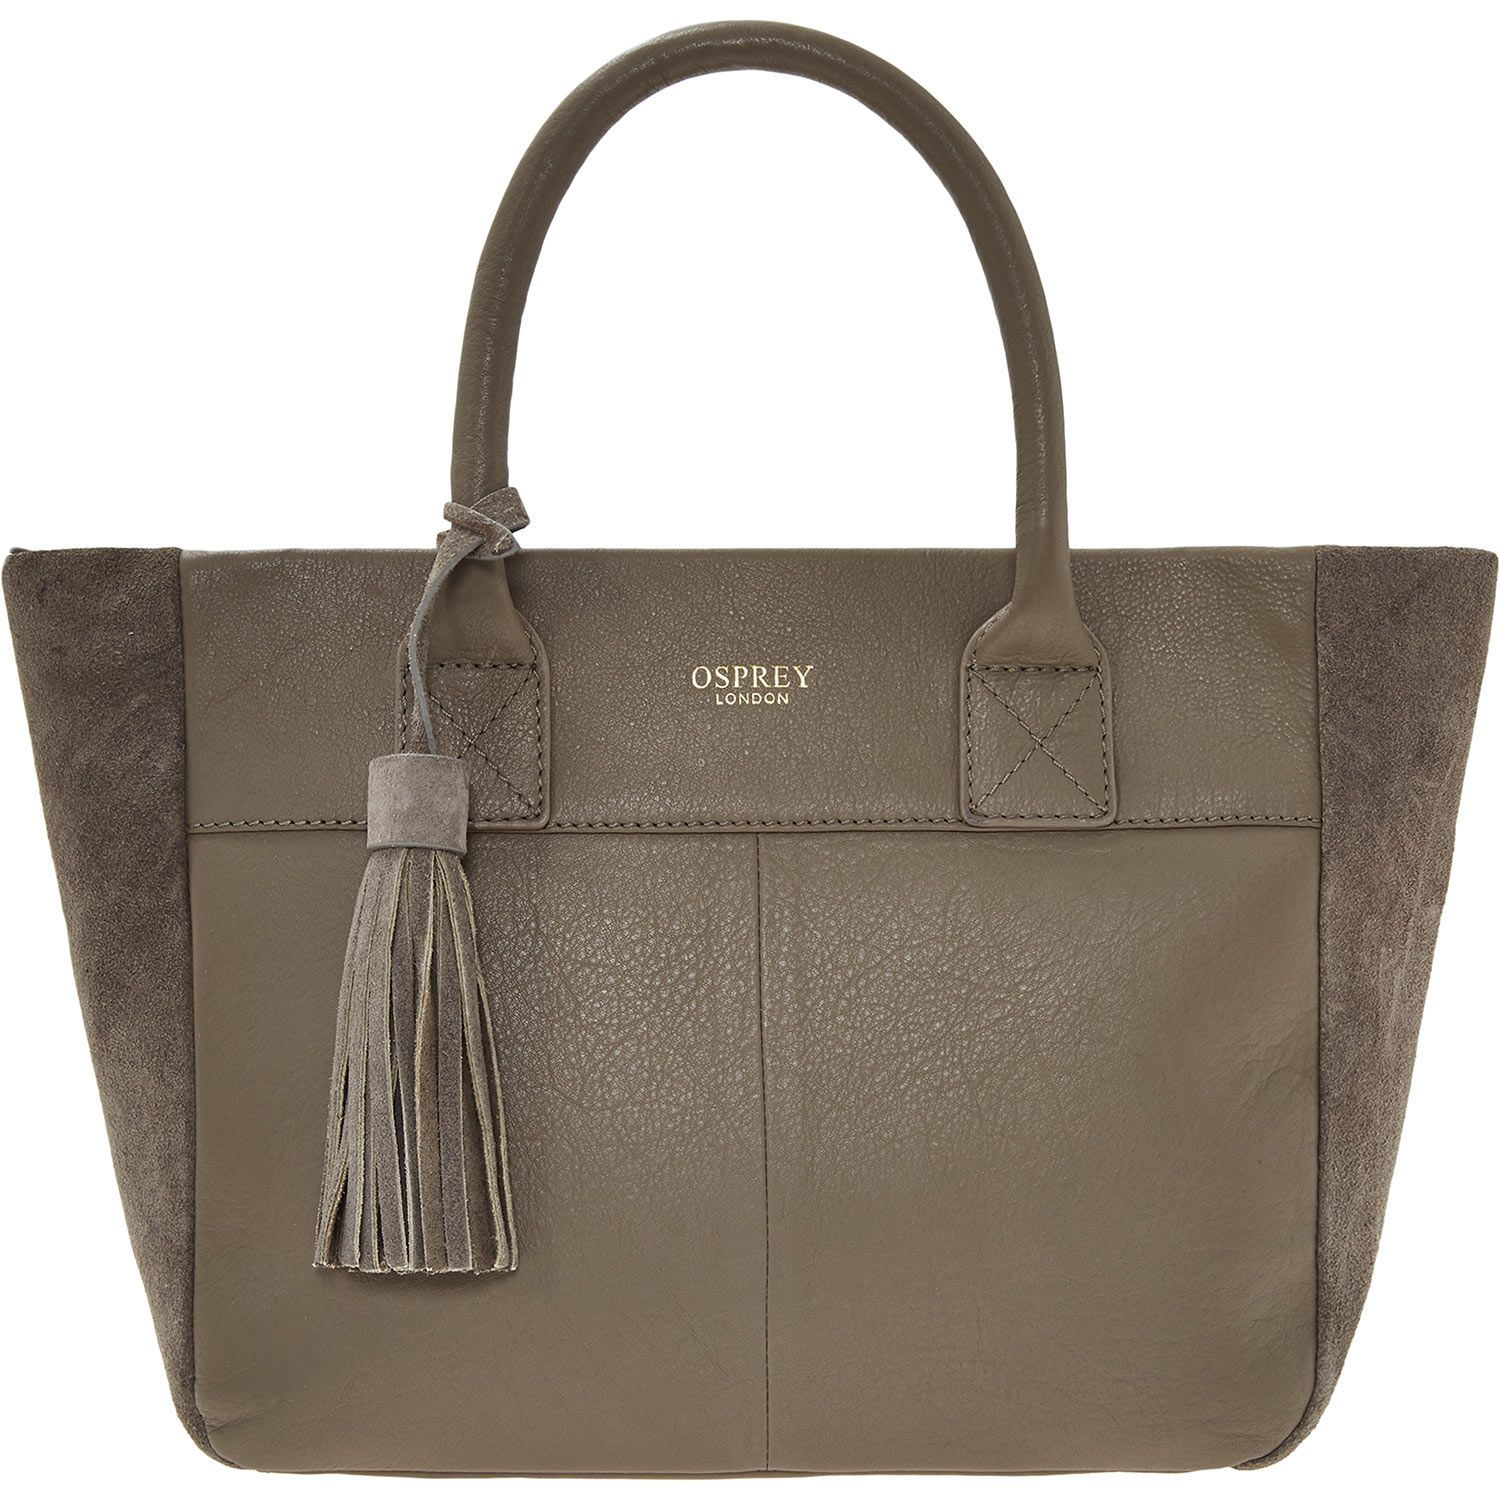 """""""Osprey London"""" Taupe Small Leather Tote Bag TK Maxx"""